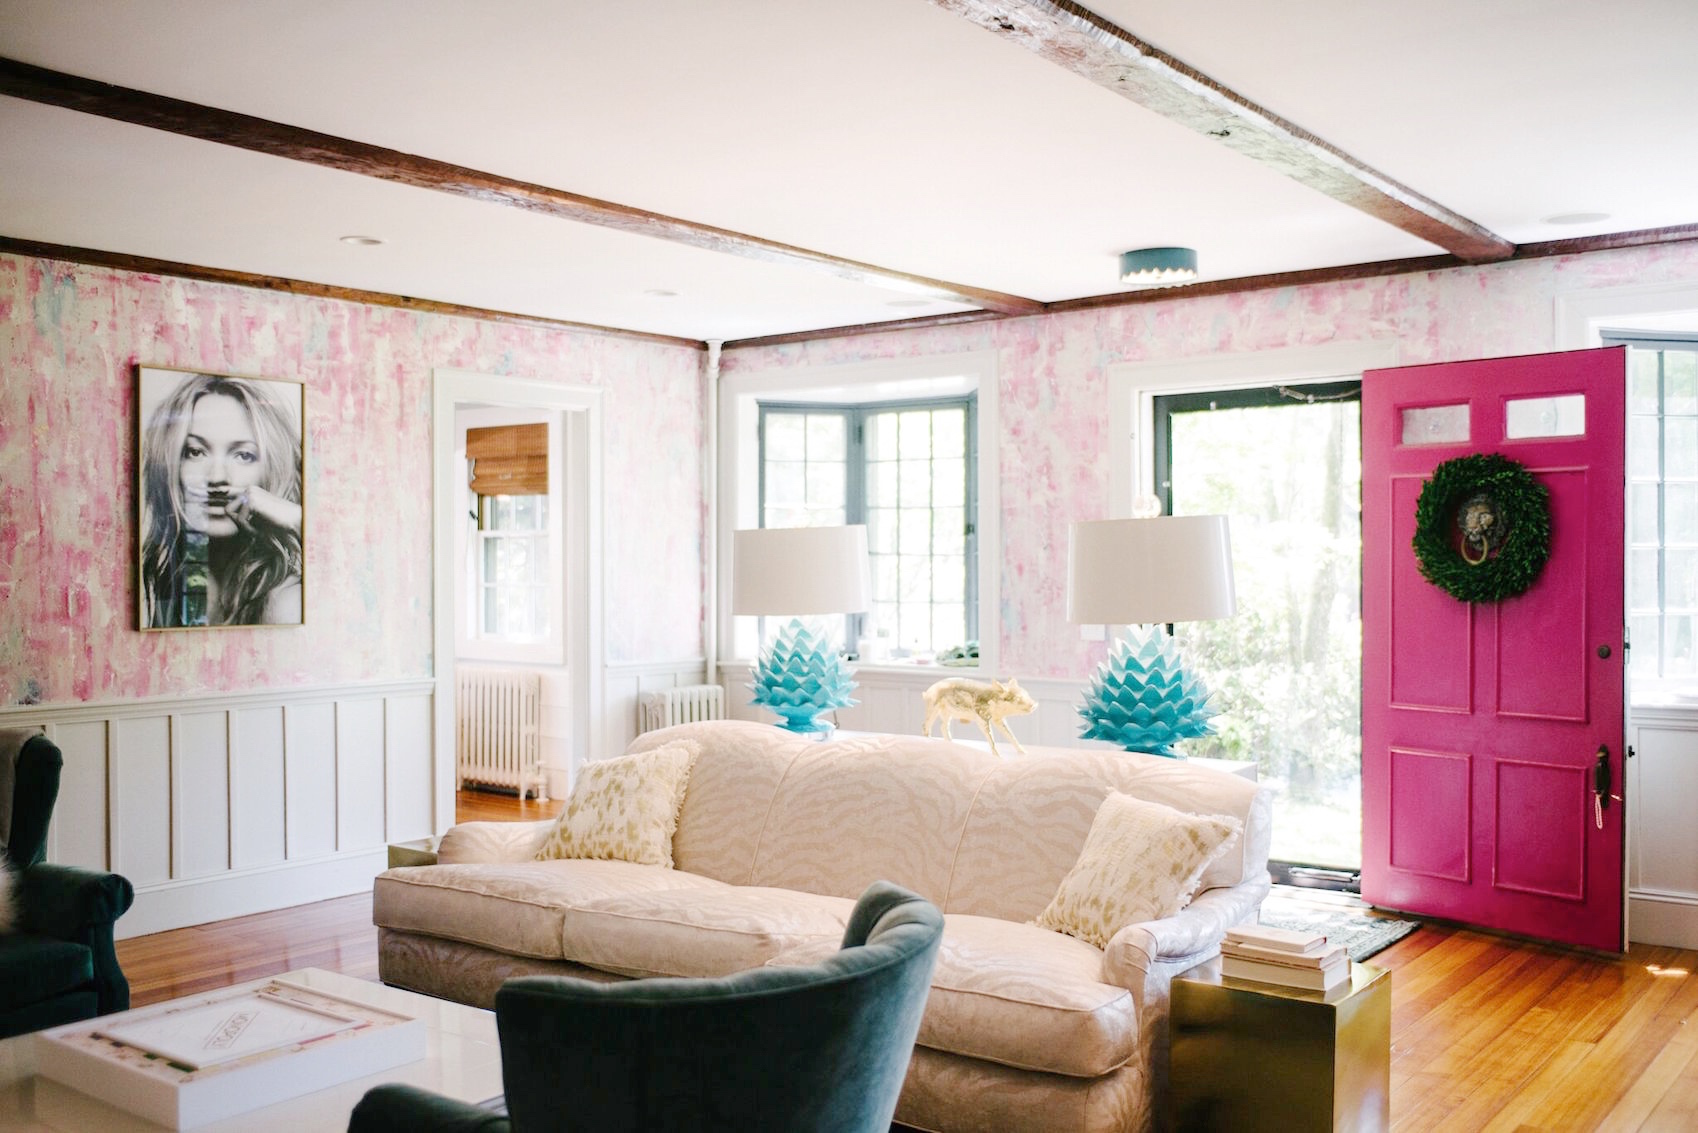 A 1920s Bungalow Filled With Bright Personality – Design Sponge